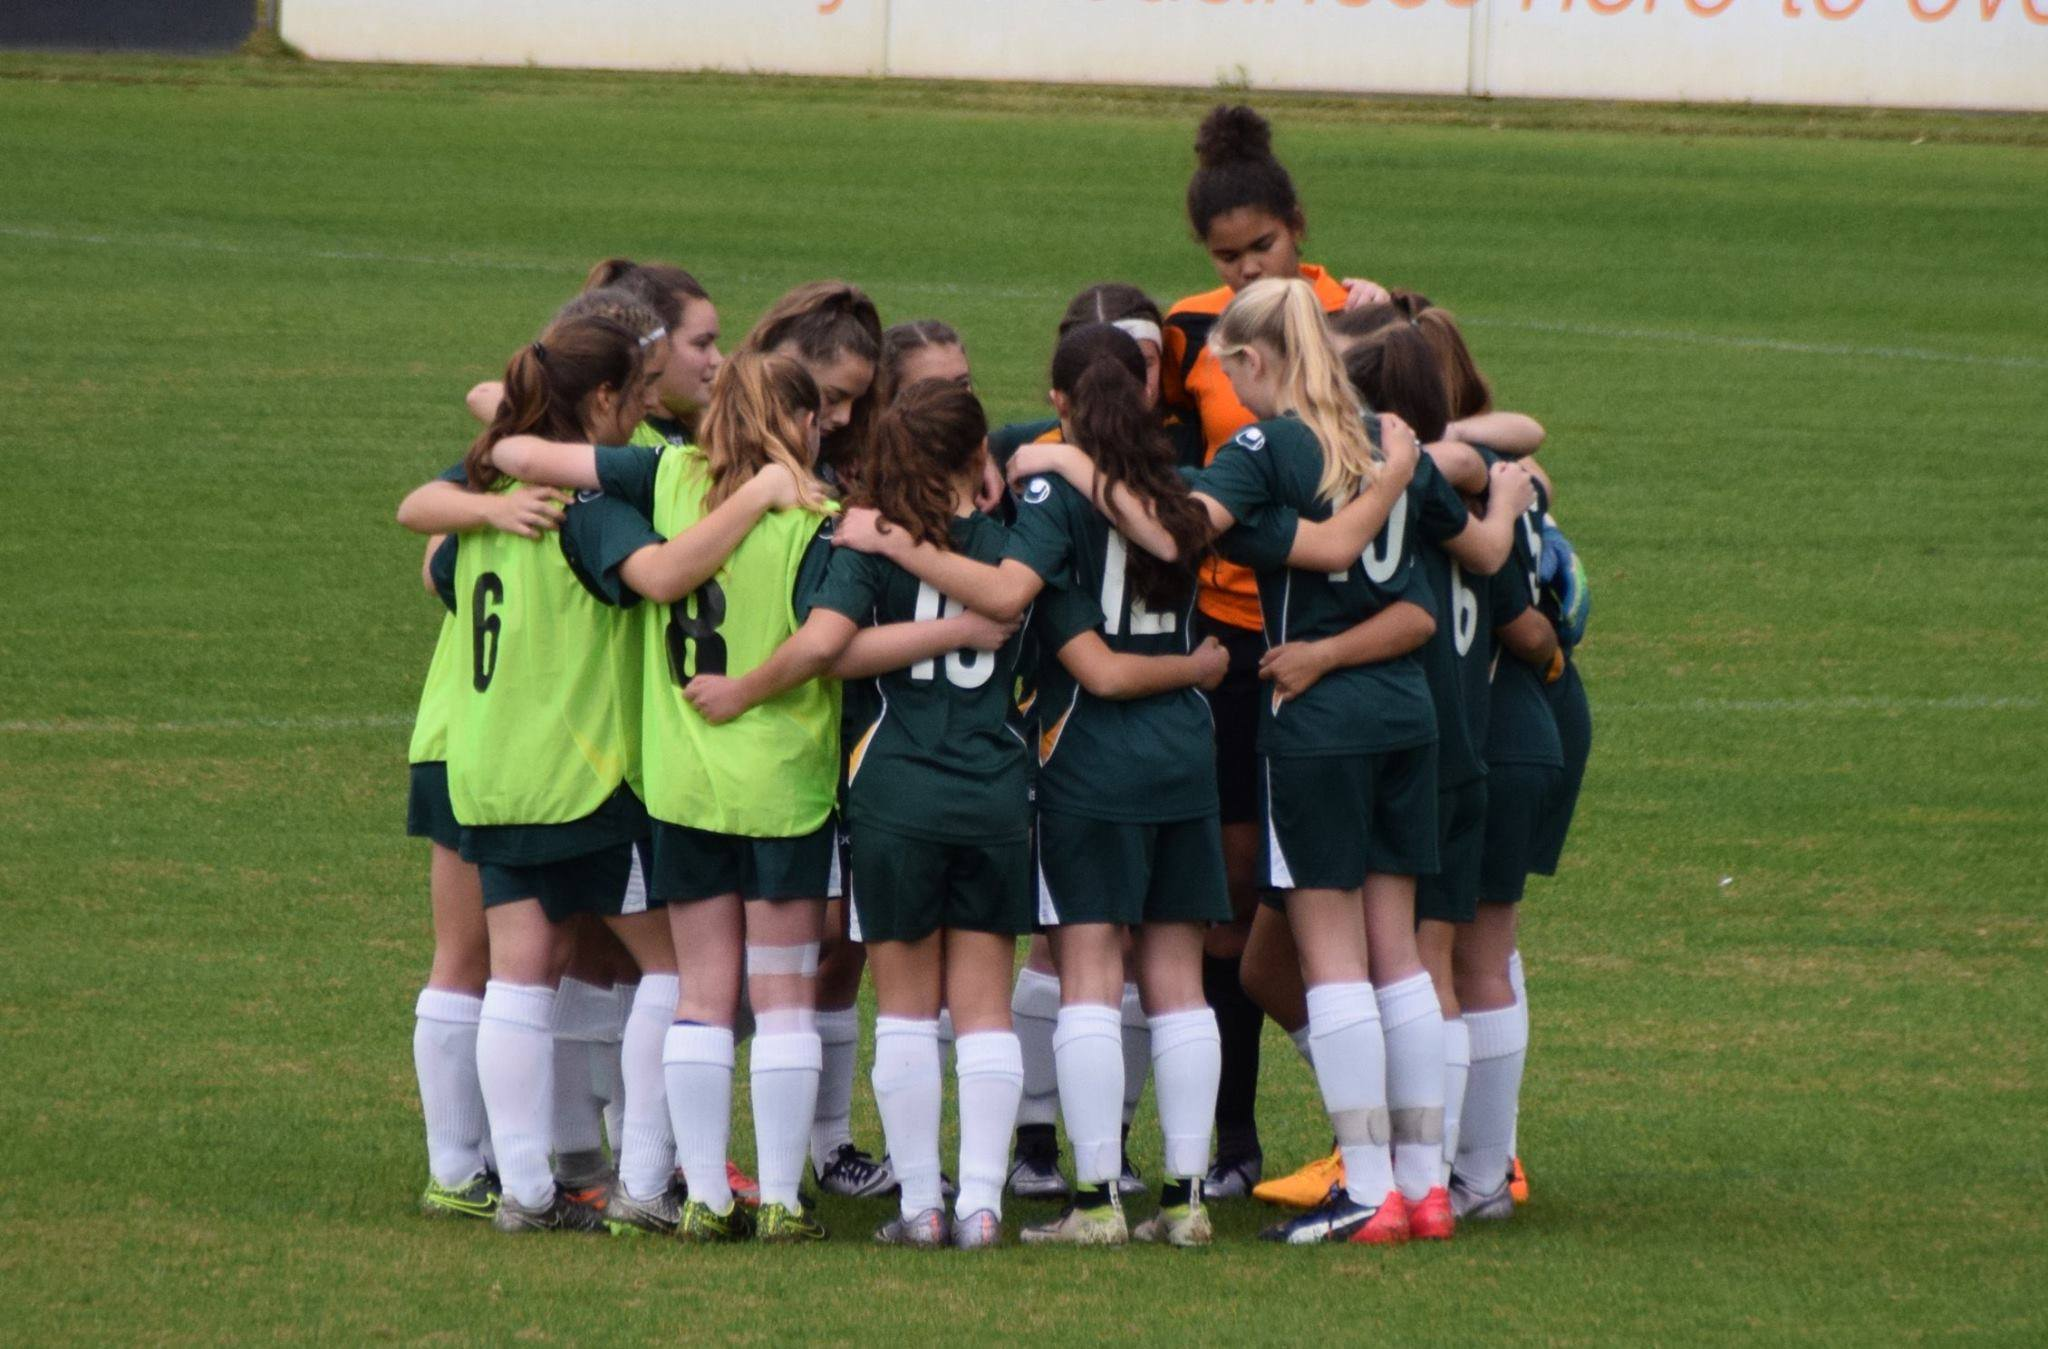 State Under 14 and Under 15 Girls teams announced